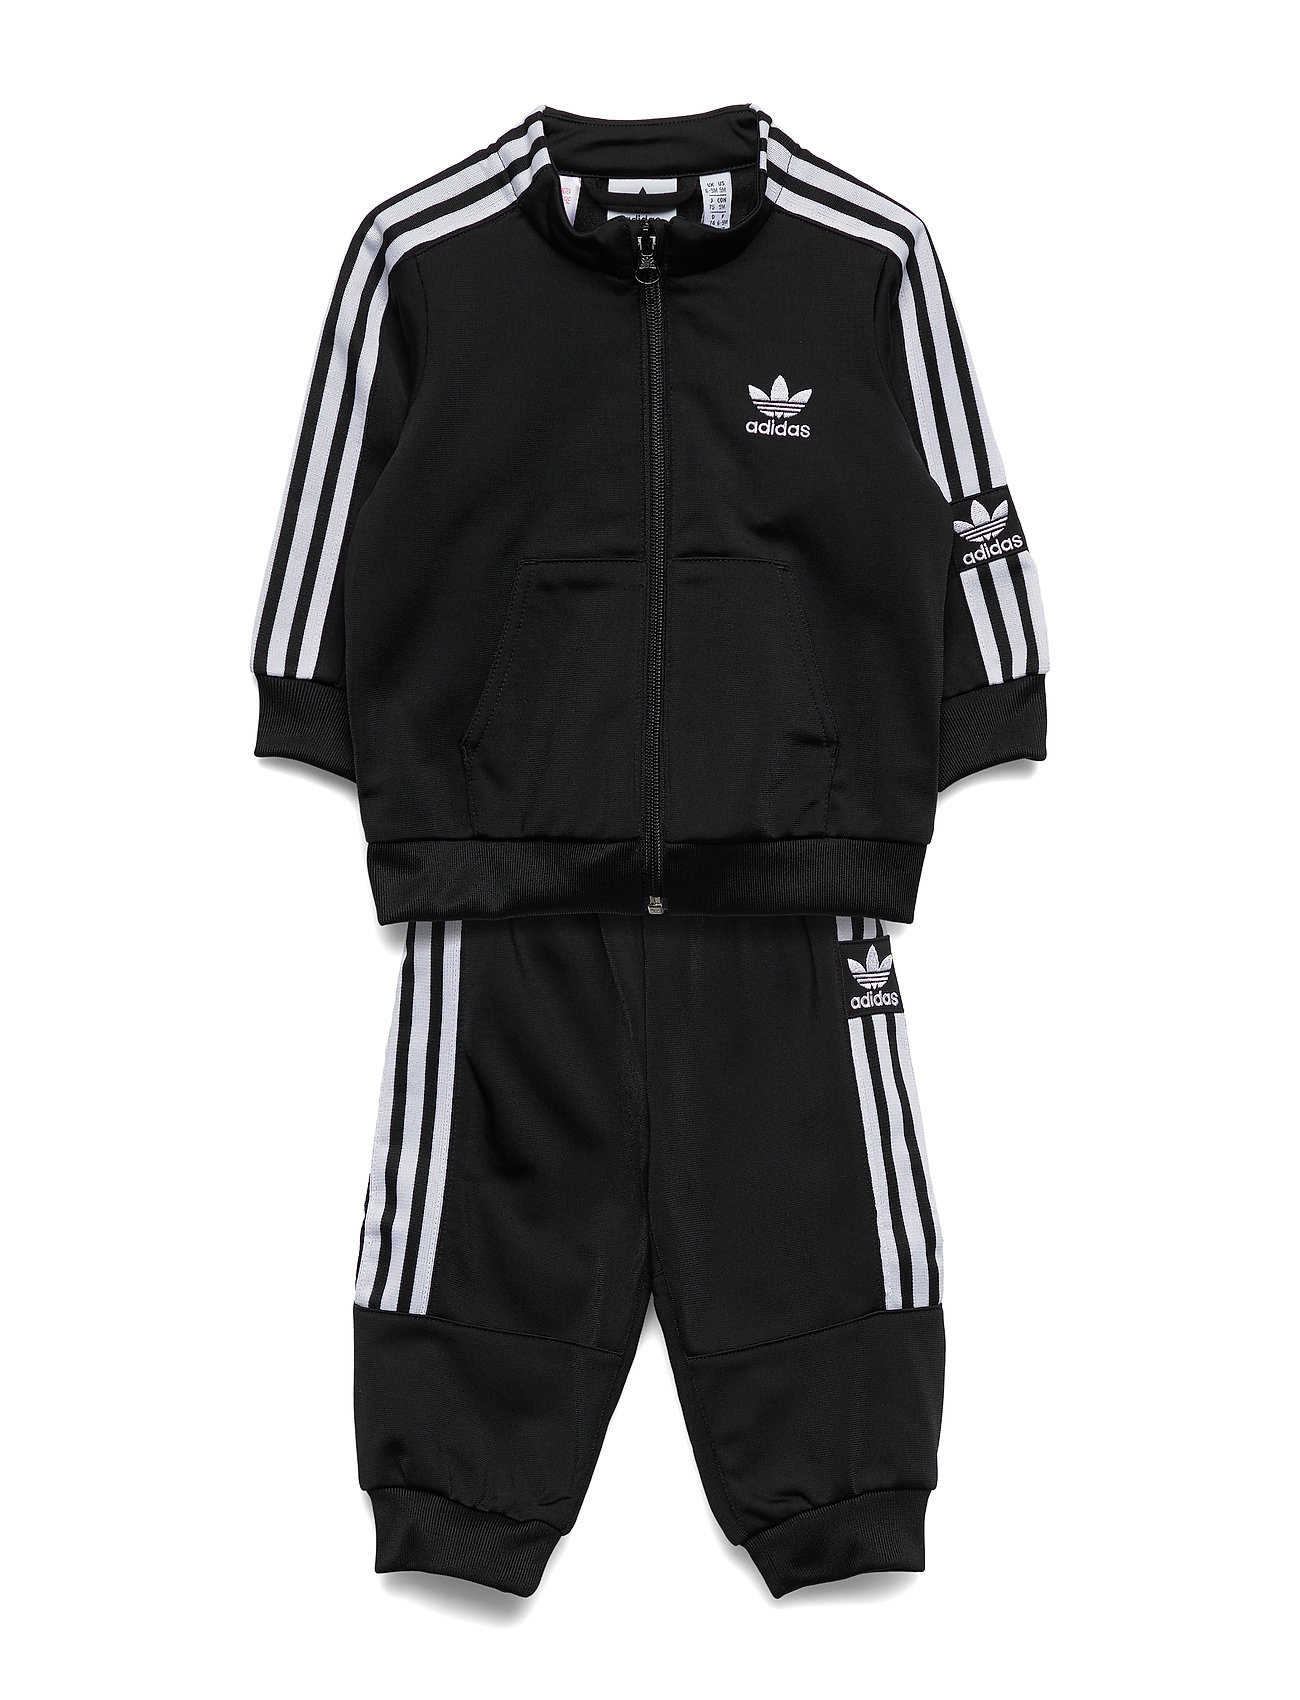 adidas Originals LOCK UP TS - BLACK/WHITE